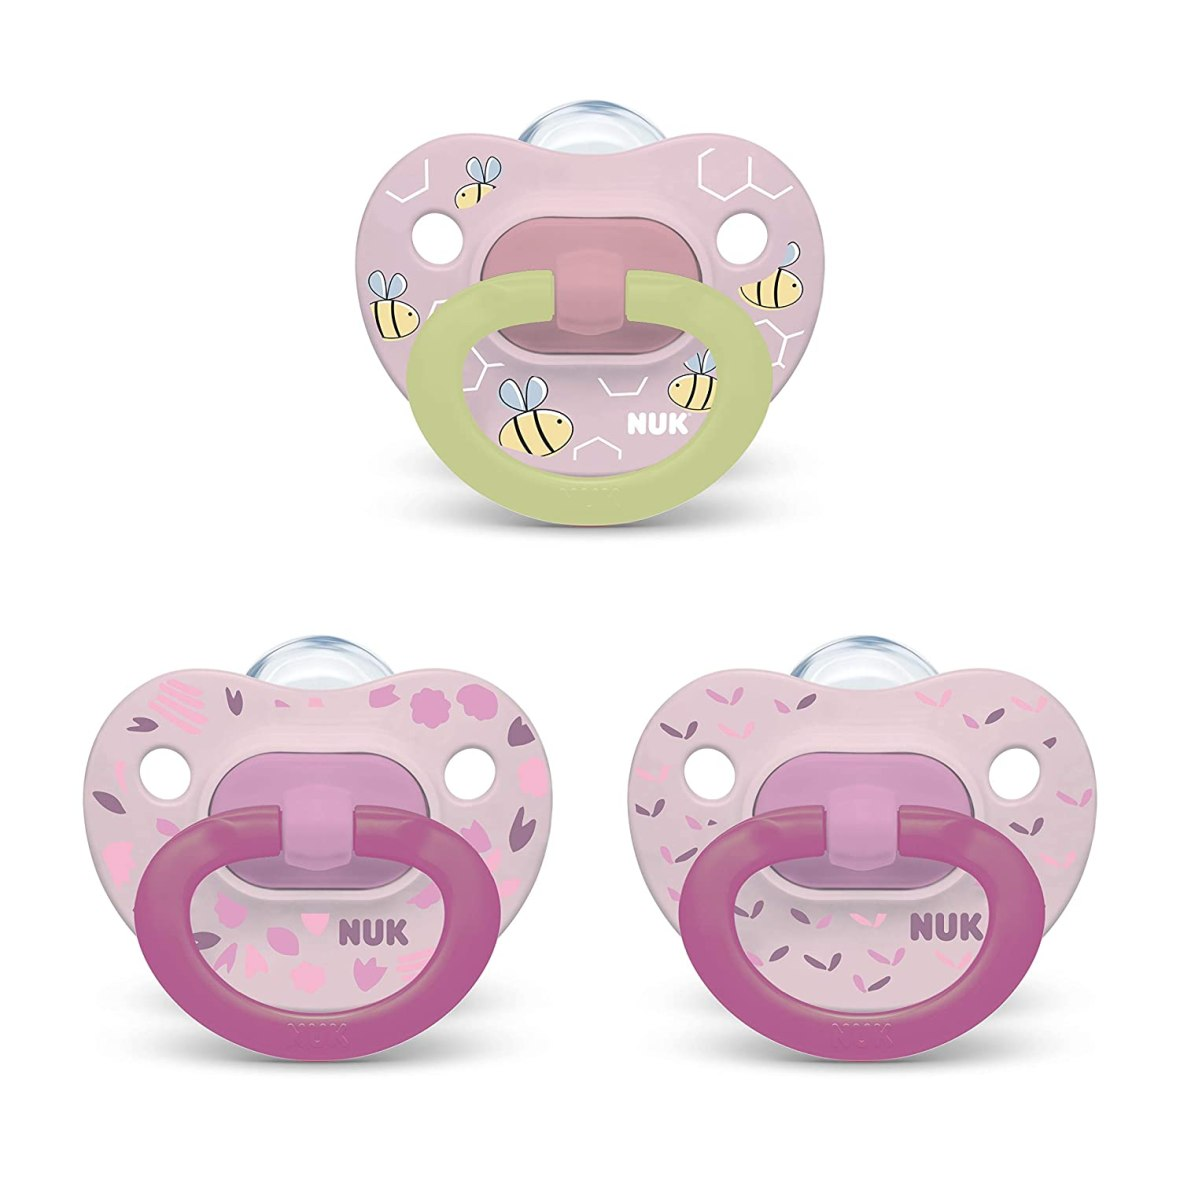 NUK Orthodontic Pacifier Value Pack, Girl, 0-6 Months, 3-Pack Pink Bees